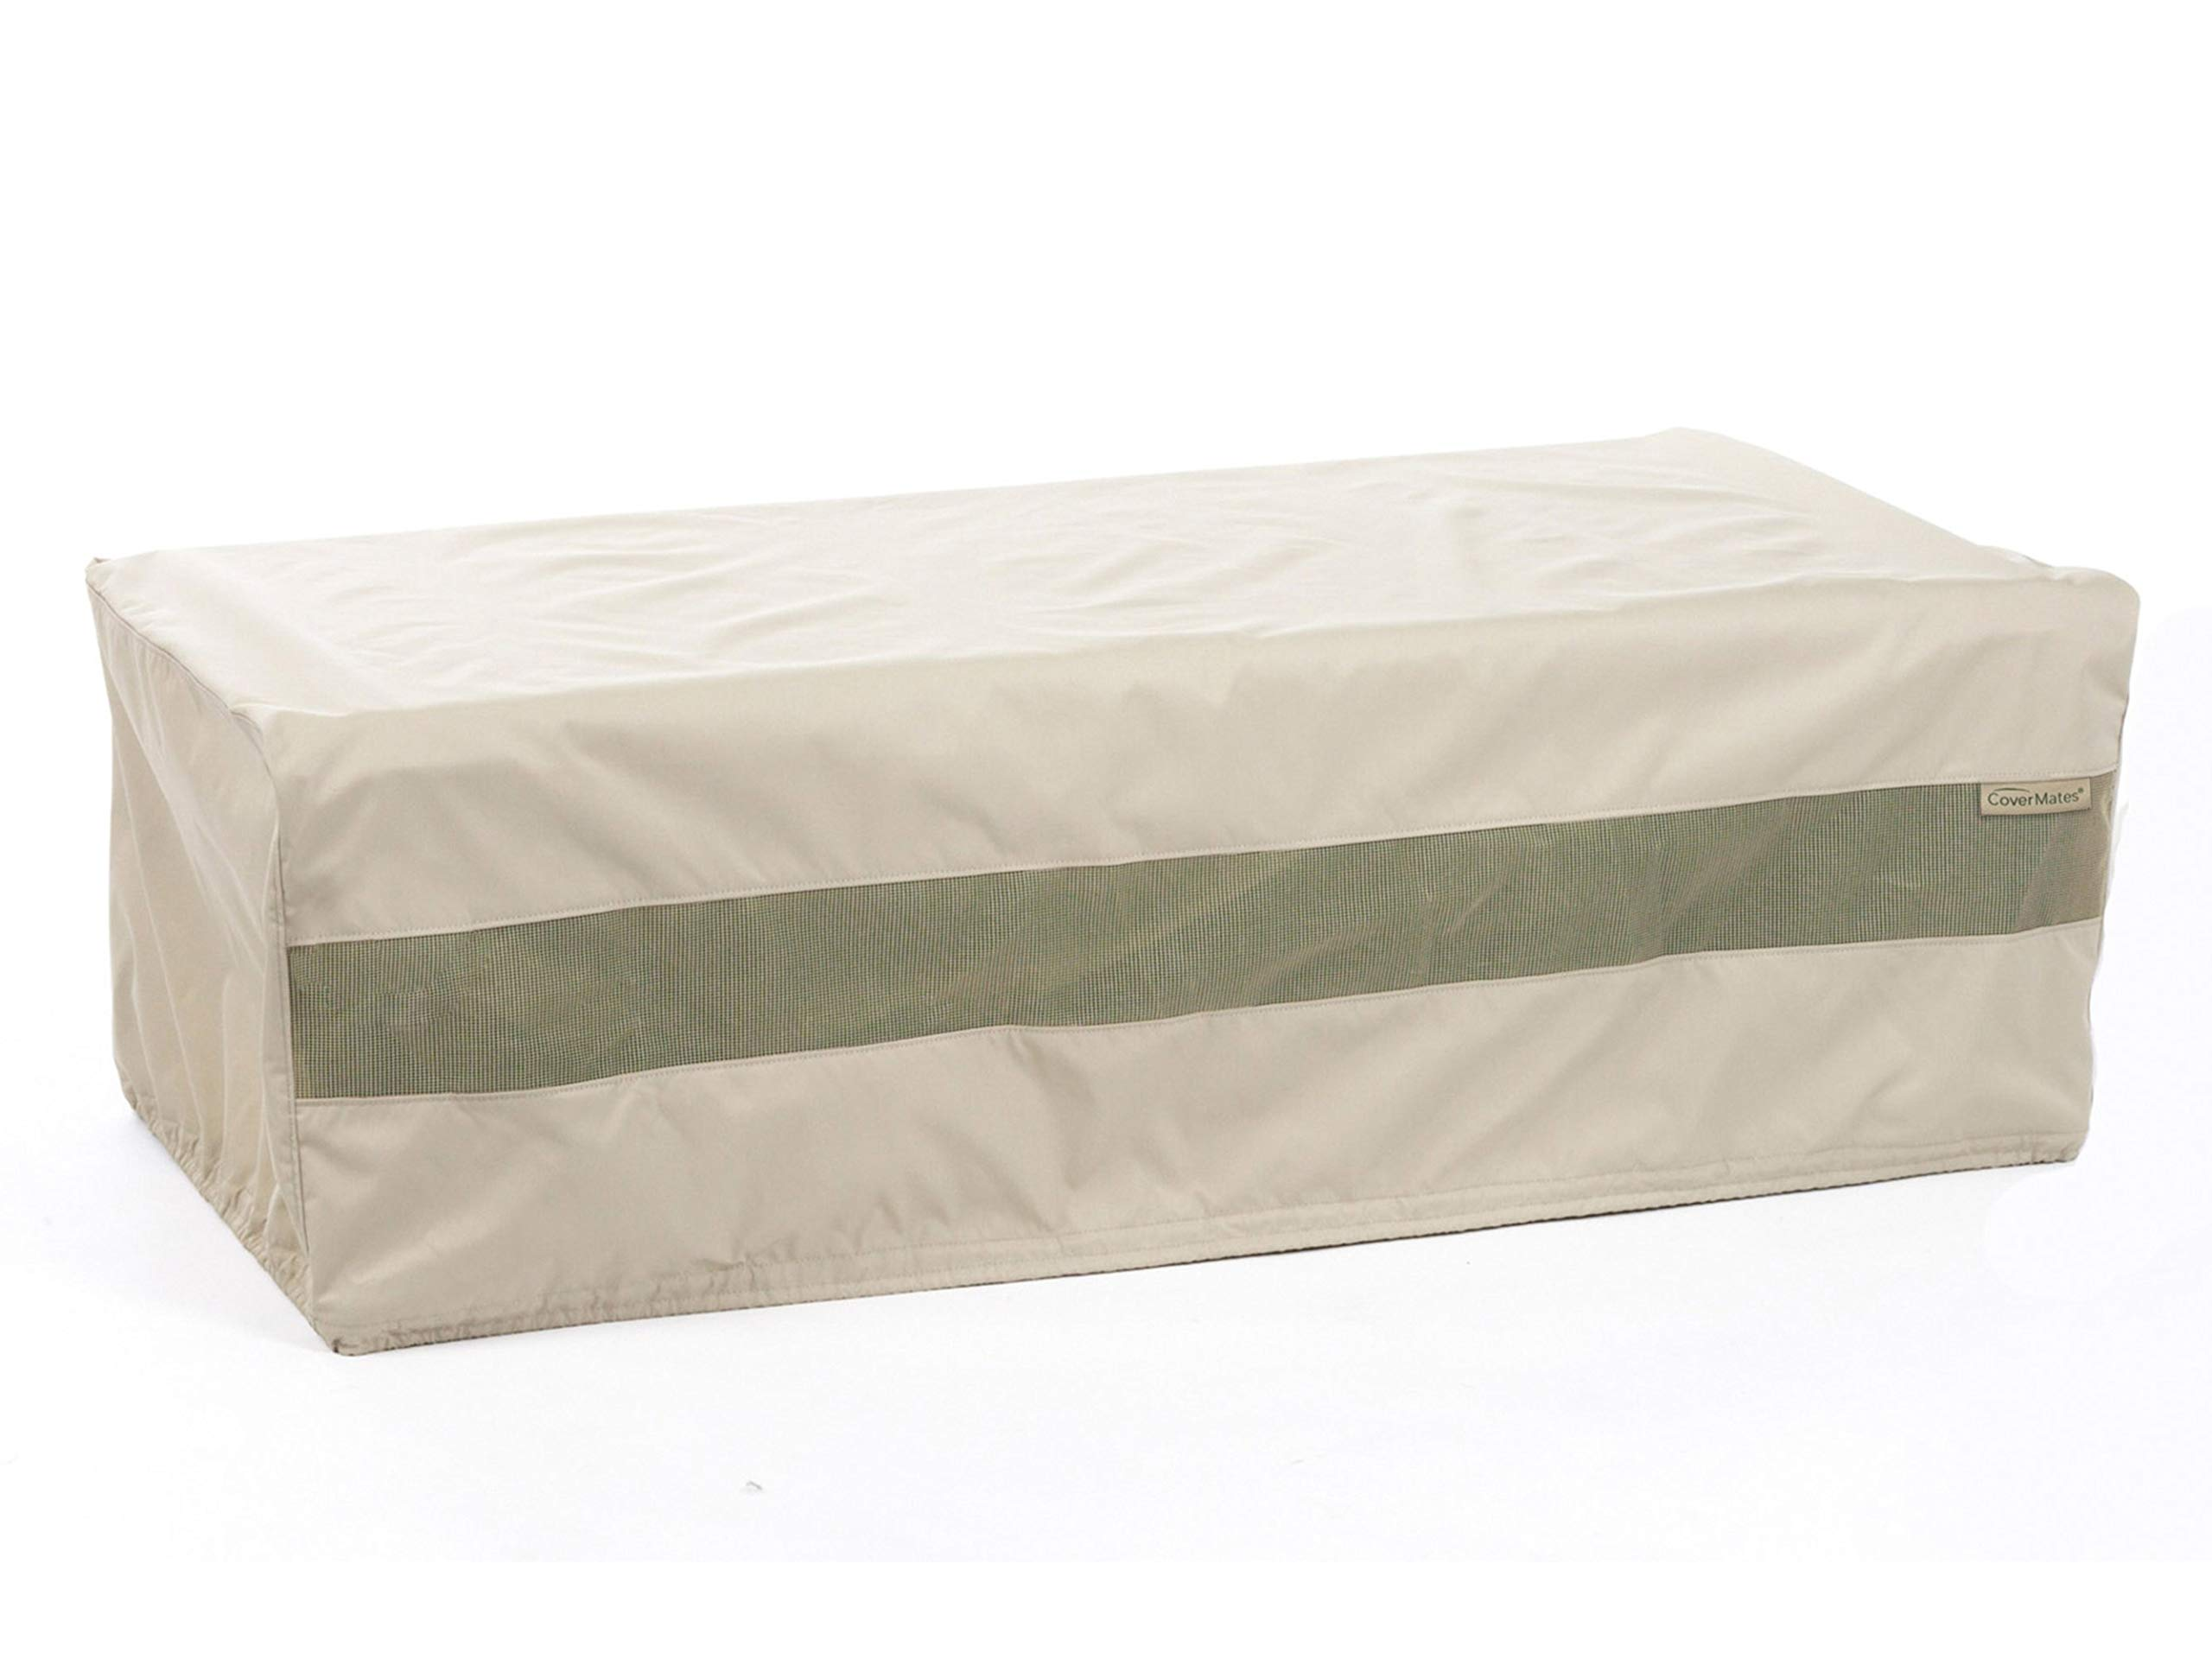 Covermates - Rectangular Accent Table Cover - 60W x 36D x 25H - Elite - 300D Stock-Dyed Polyester - Double Stitched Seams - Locking Drawcord System - 3 YR Warranty - Weather Resistant - Khaki by Covermates